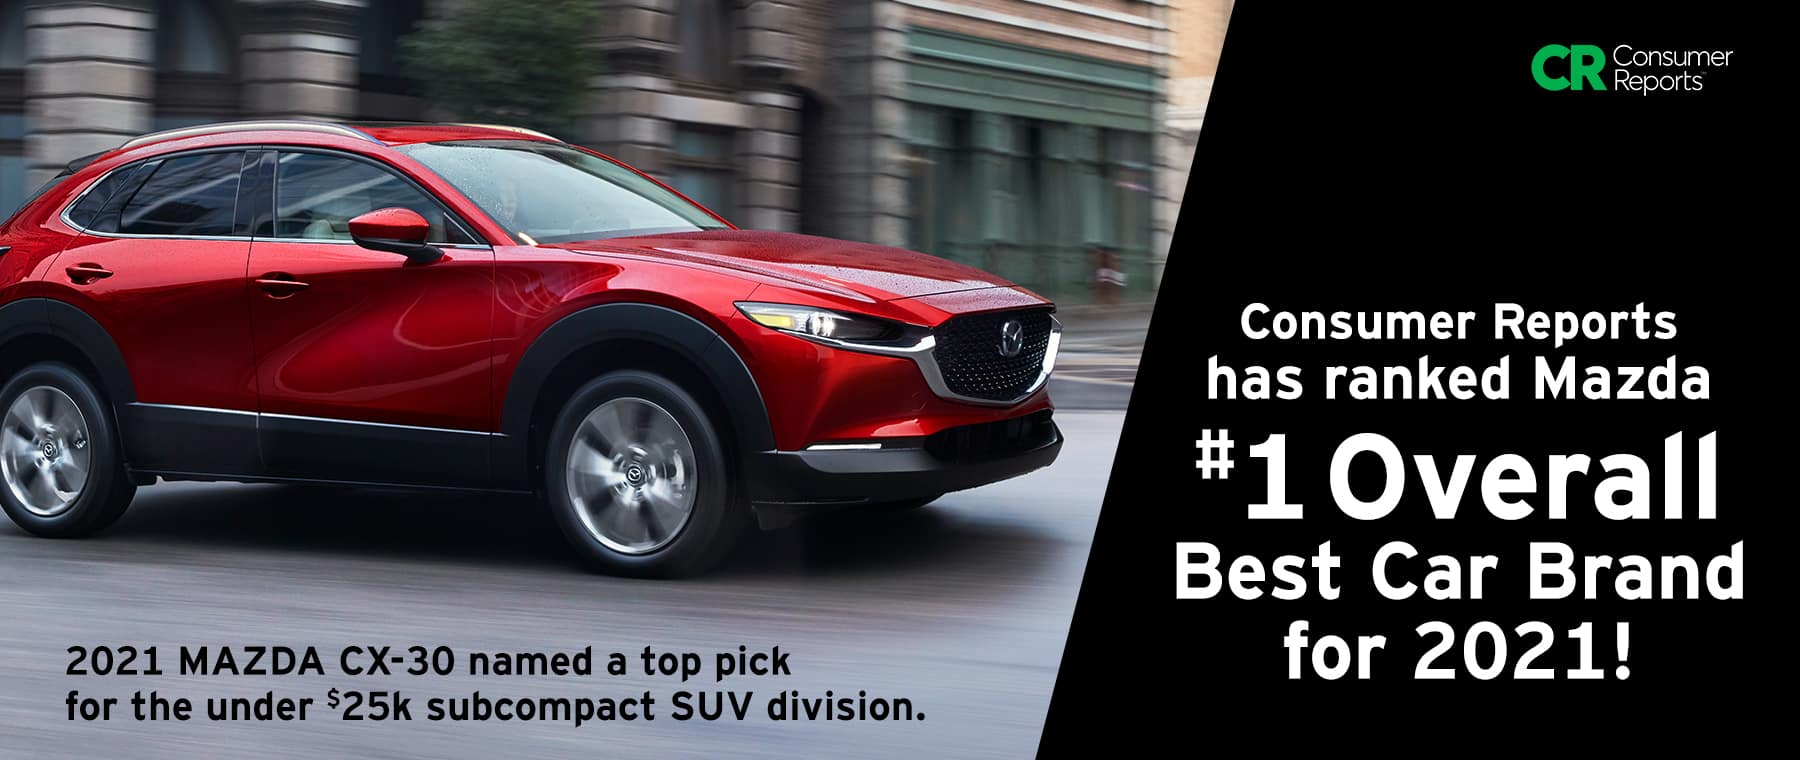 #1 Overall Best Car Brand